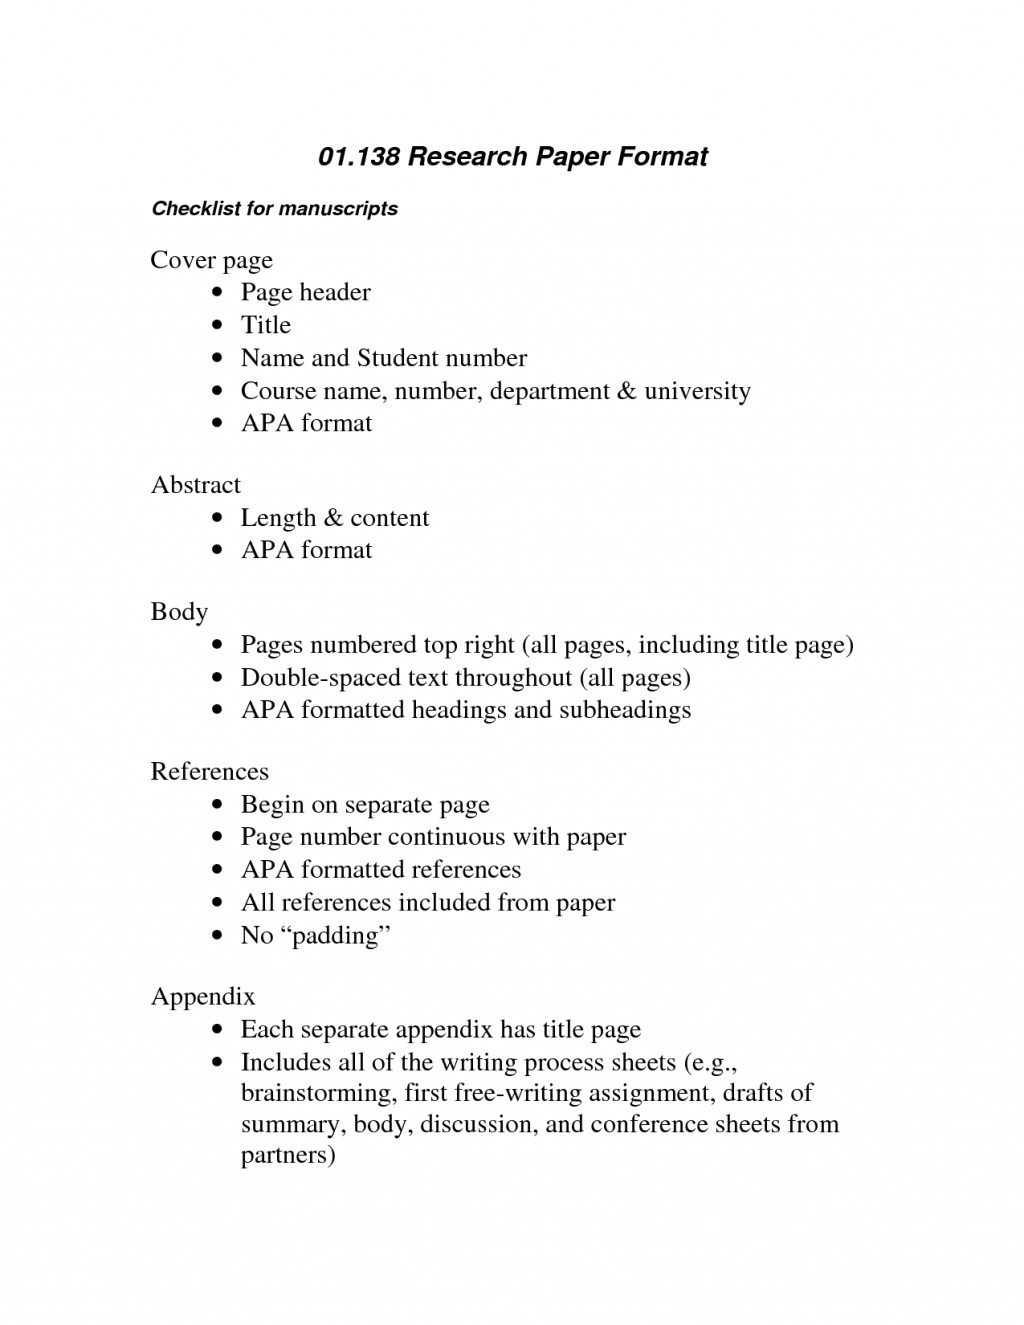 004 Proper Order Of Sections Research Paper In Apa Marvelous A Format Large